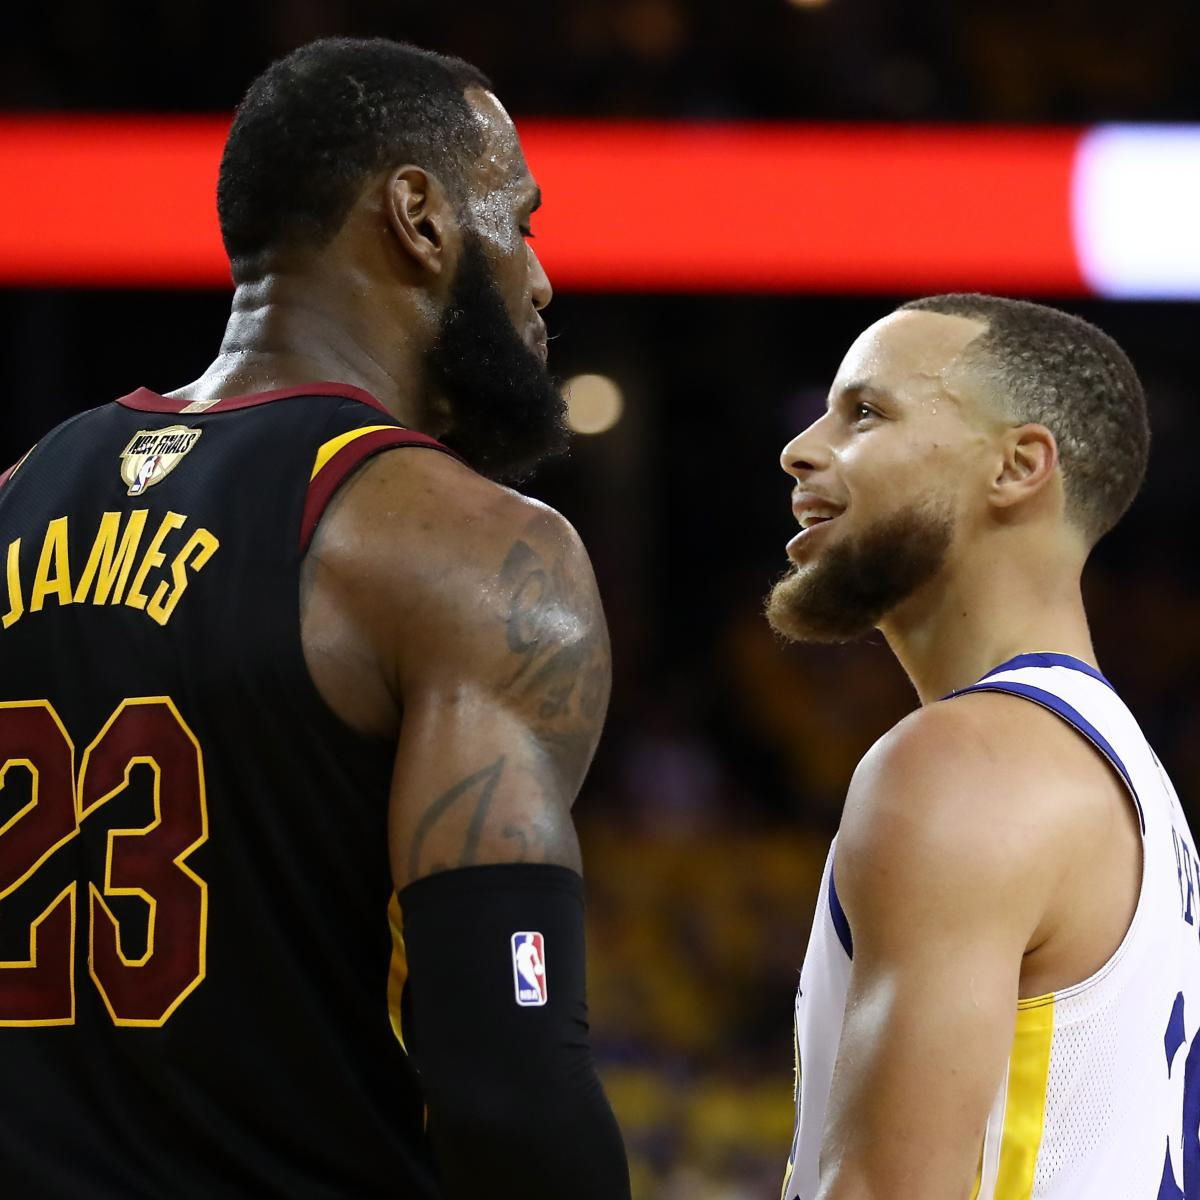 Cavaliers vs. Warriors: Game 1 Stats and NBA Finals 2018 Game 2 Schedule, Odds